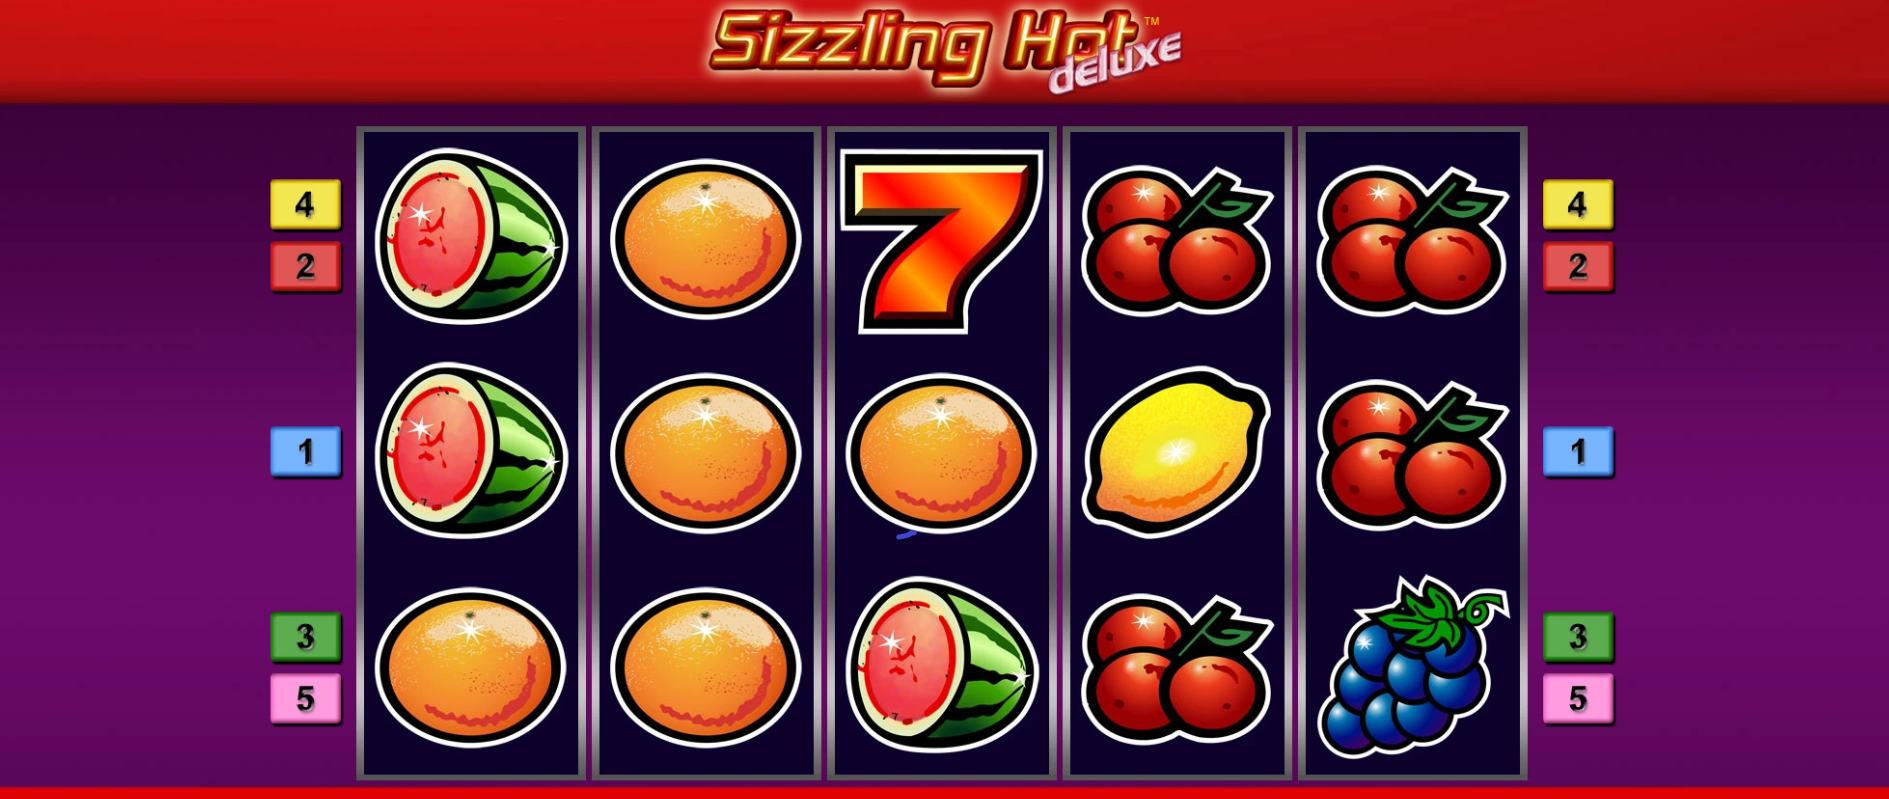 Sizzling Hot Deluxe w Total Casino